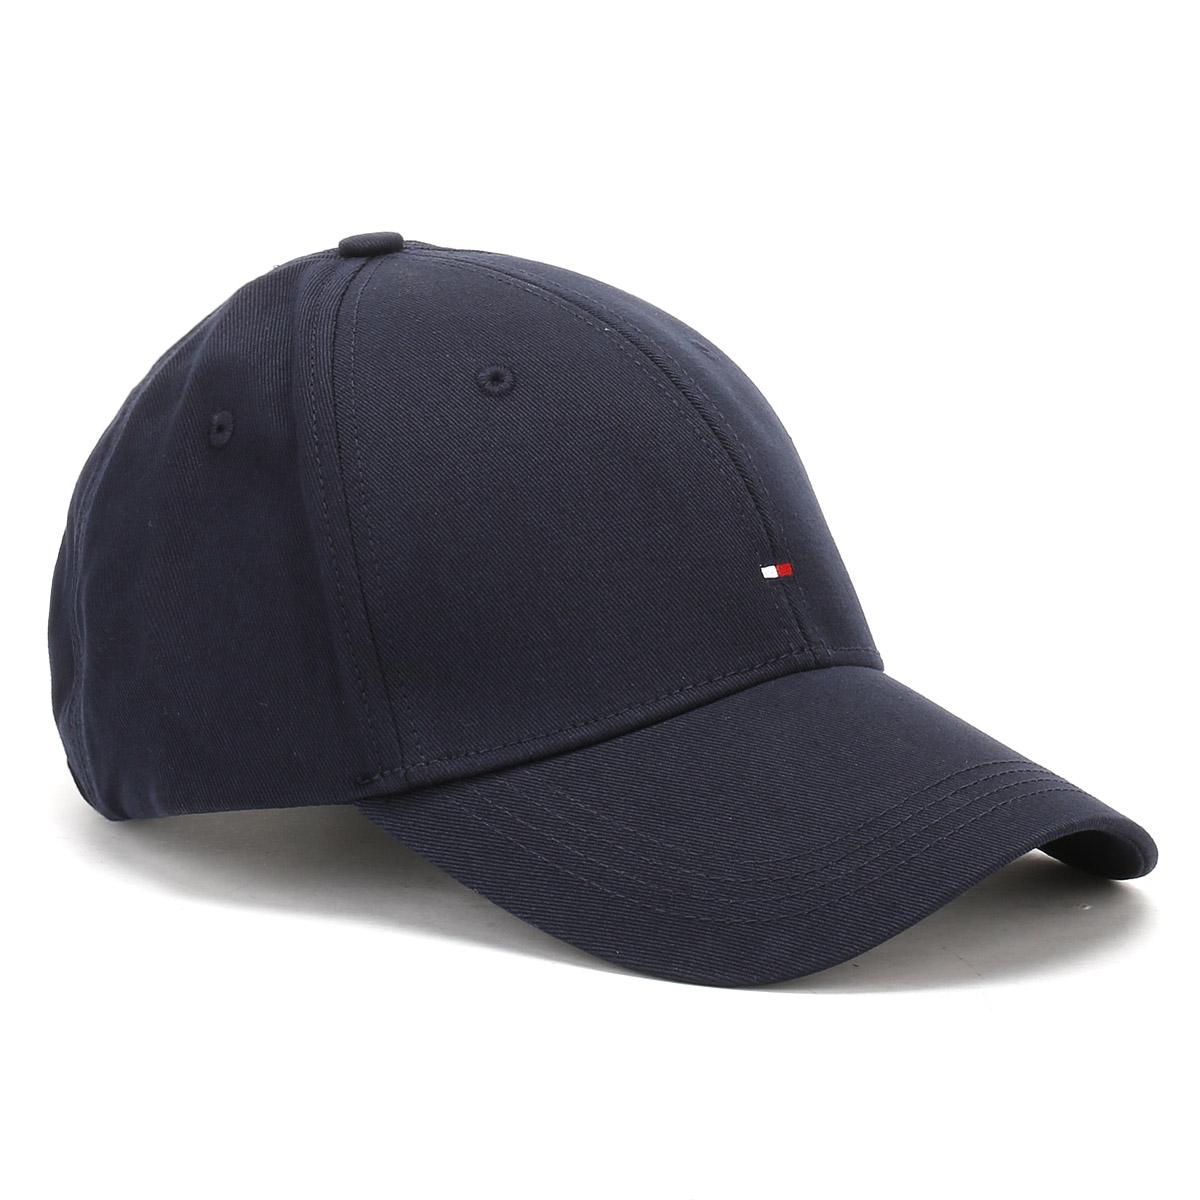 Tommy Hilfiger Midnight Black Classic Bb Cap in Black for Men - Lyst f2061e006677